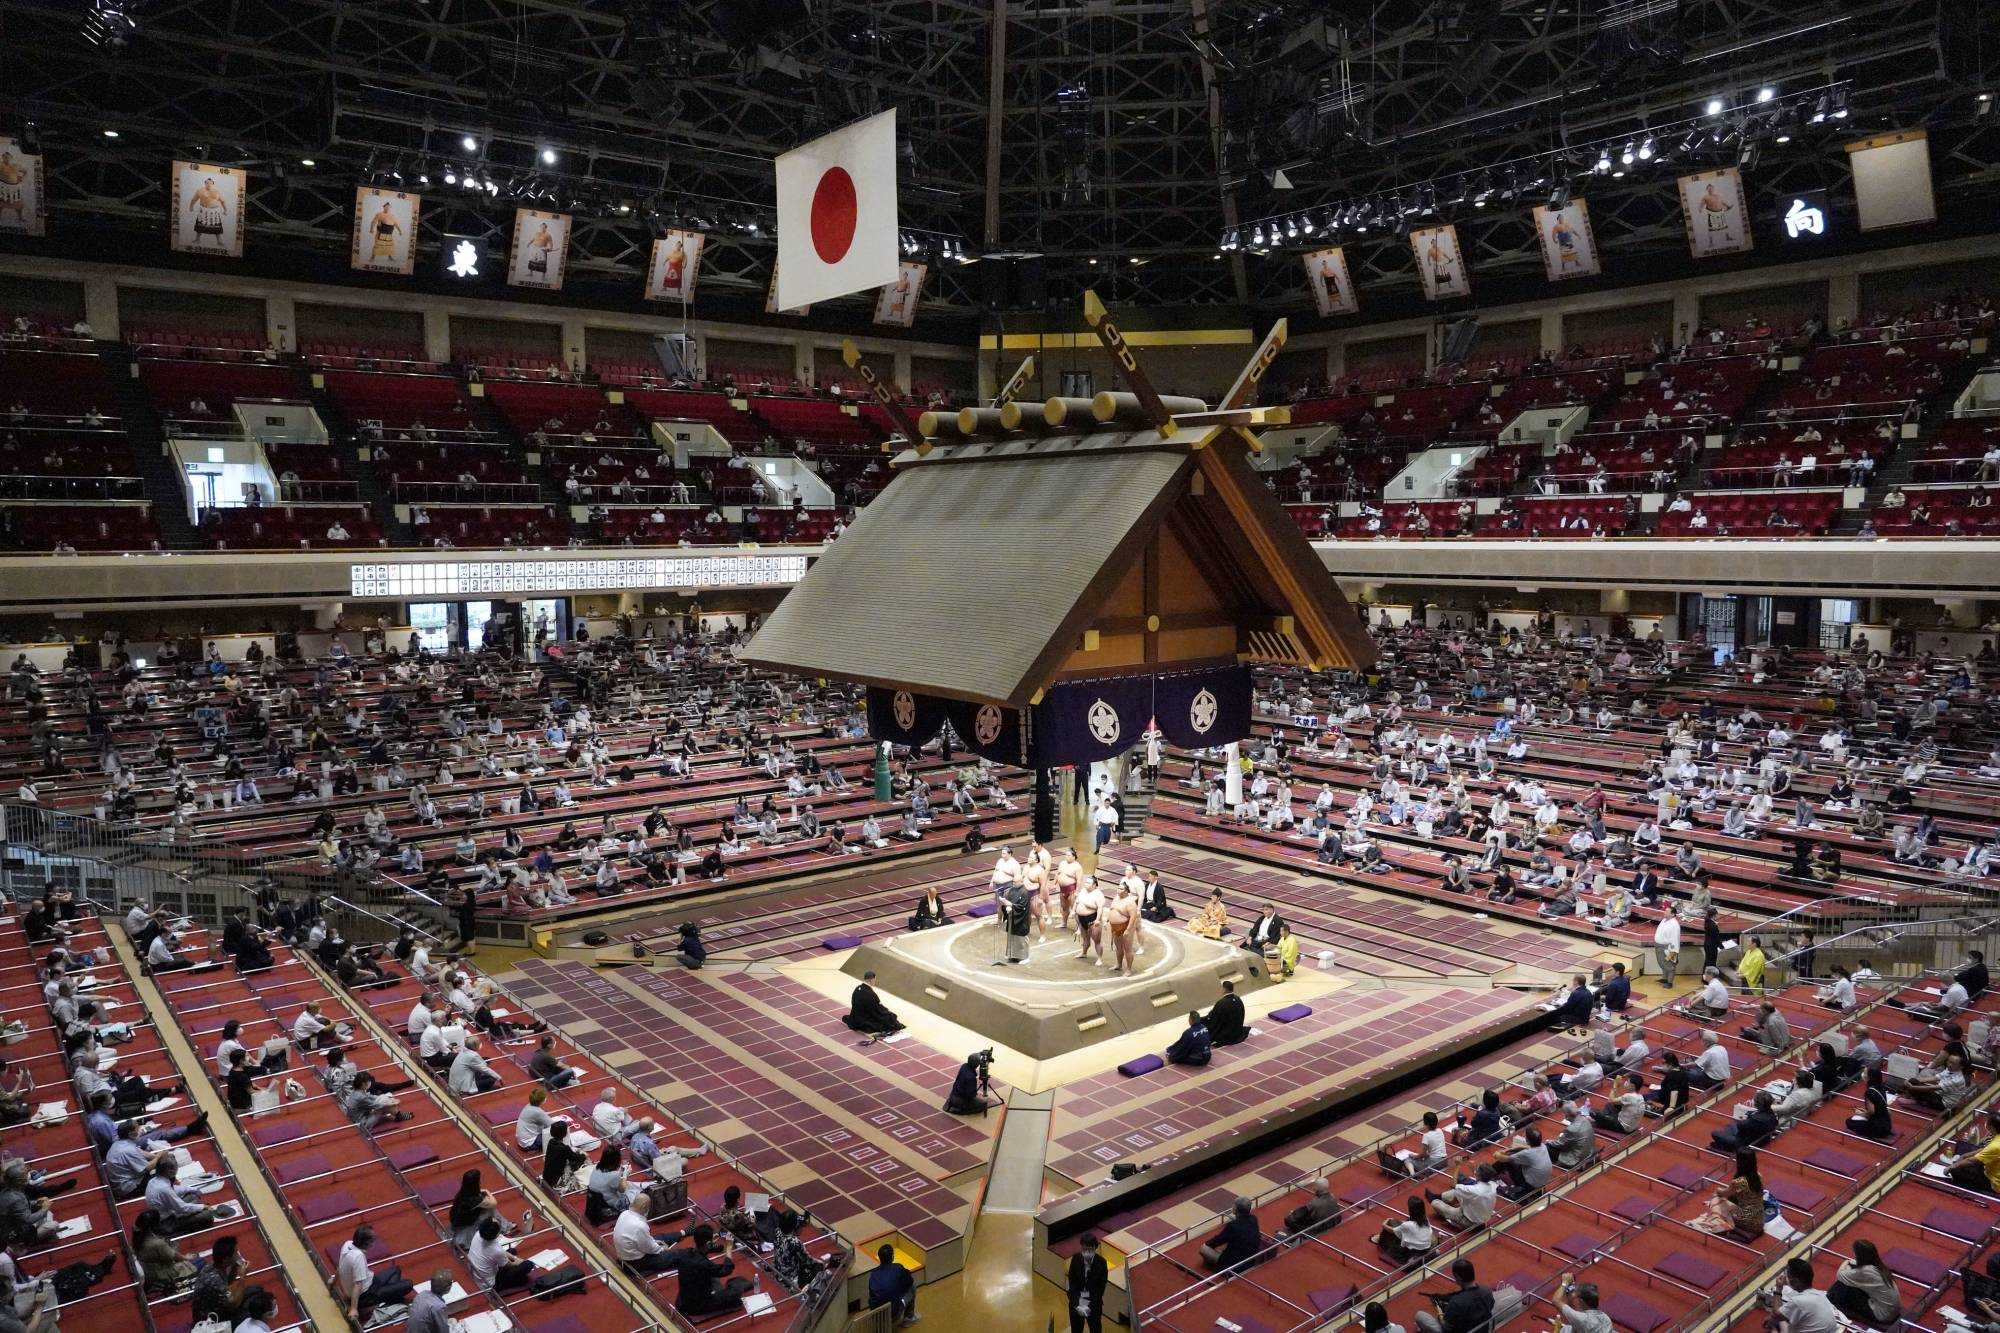 Daily attendances at two recent grand sumo tournaments held at Ryogoku Kokugikan have been capped at 2,500 as part of measures to prevent the spread of the coronavirus. | KYODO